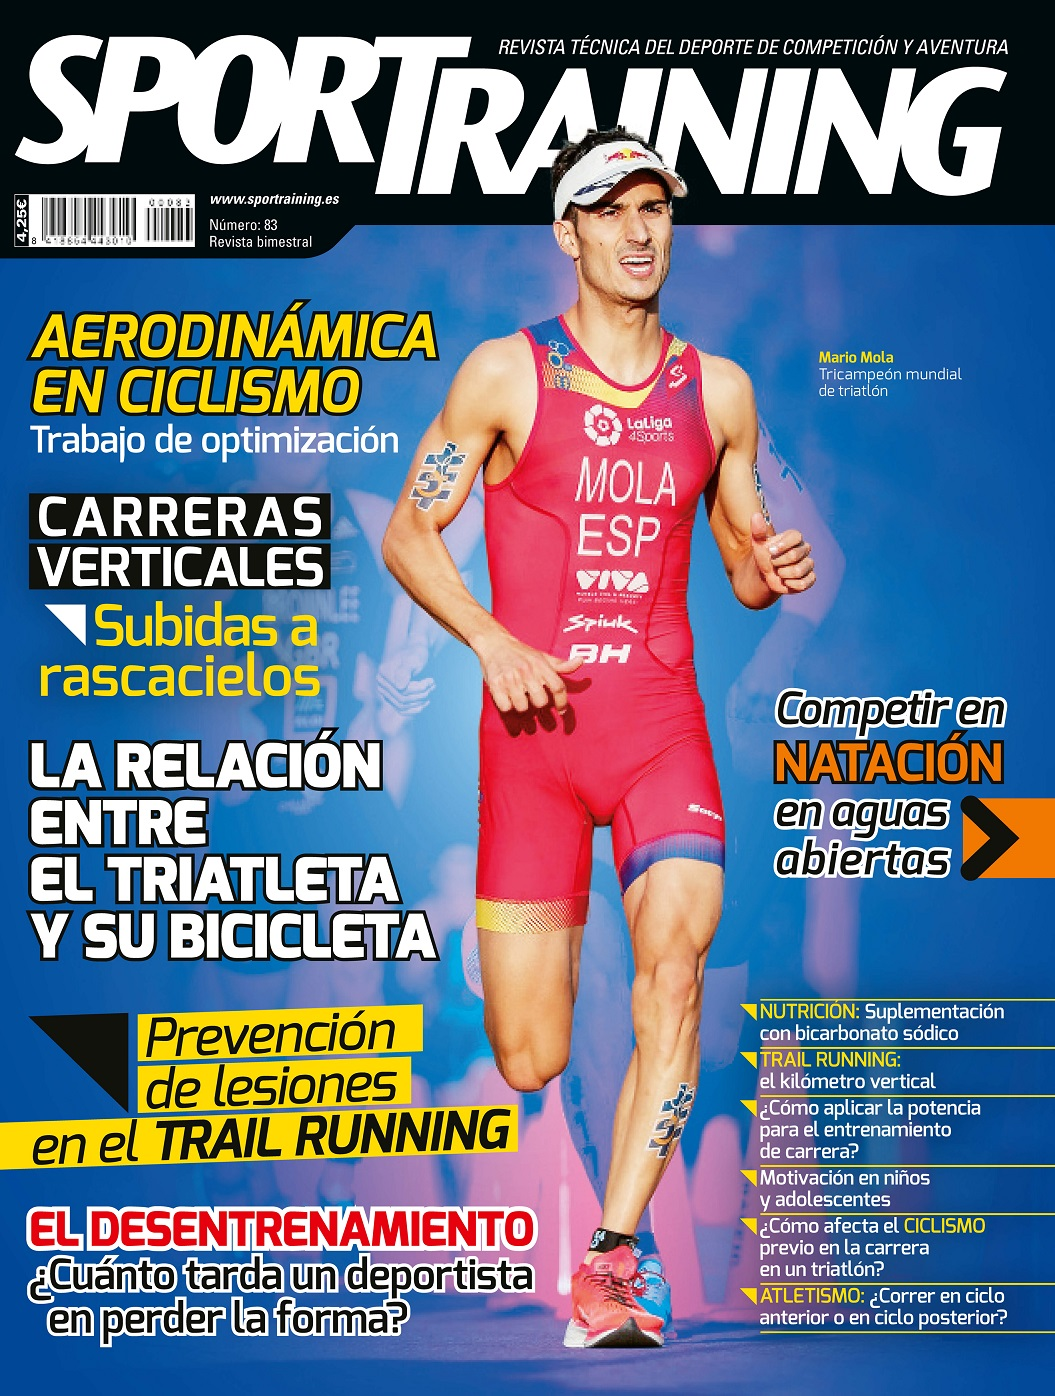 Sportraining nº 83 (marzo/abril 2019)